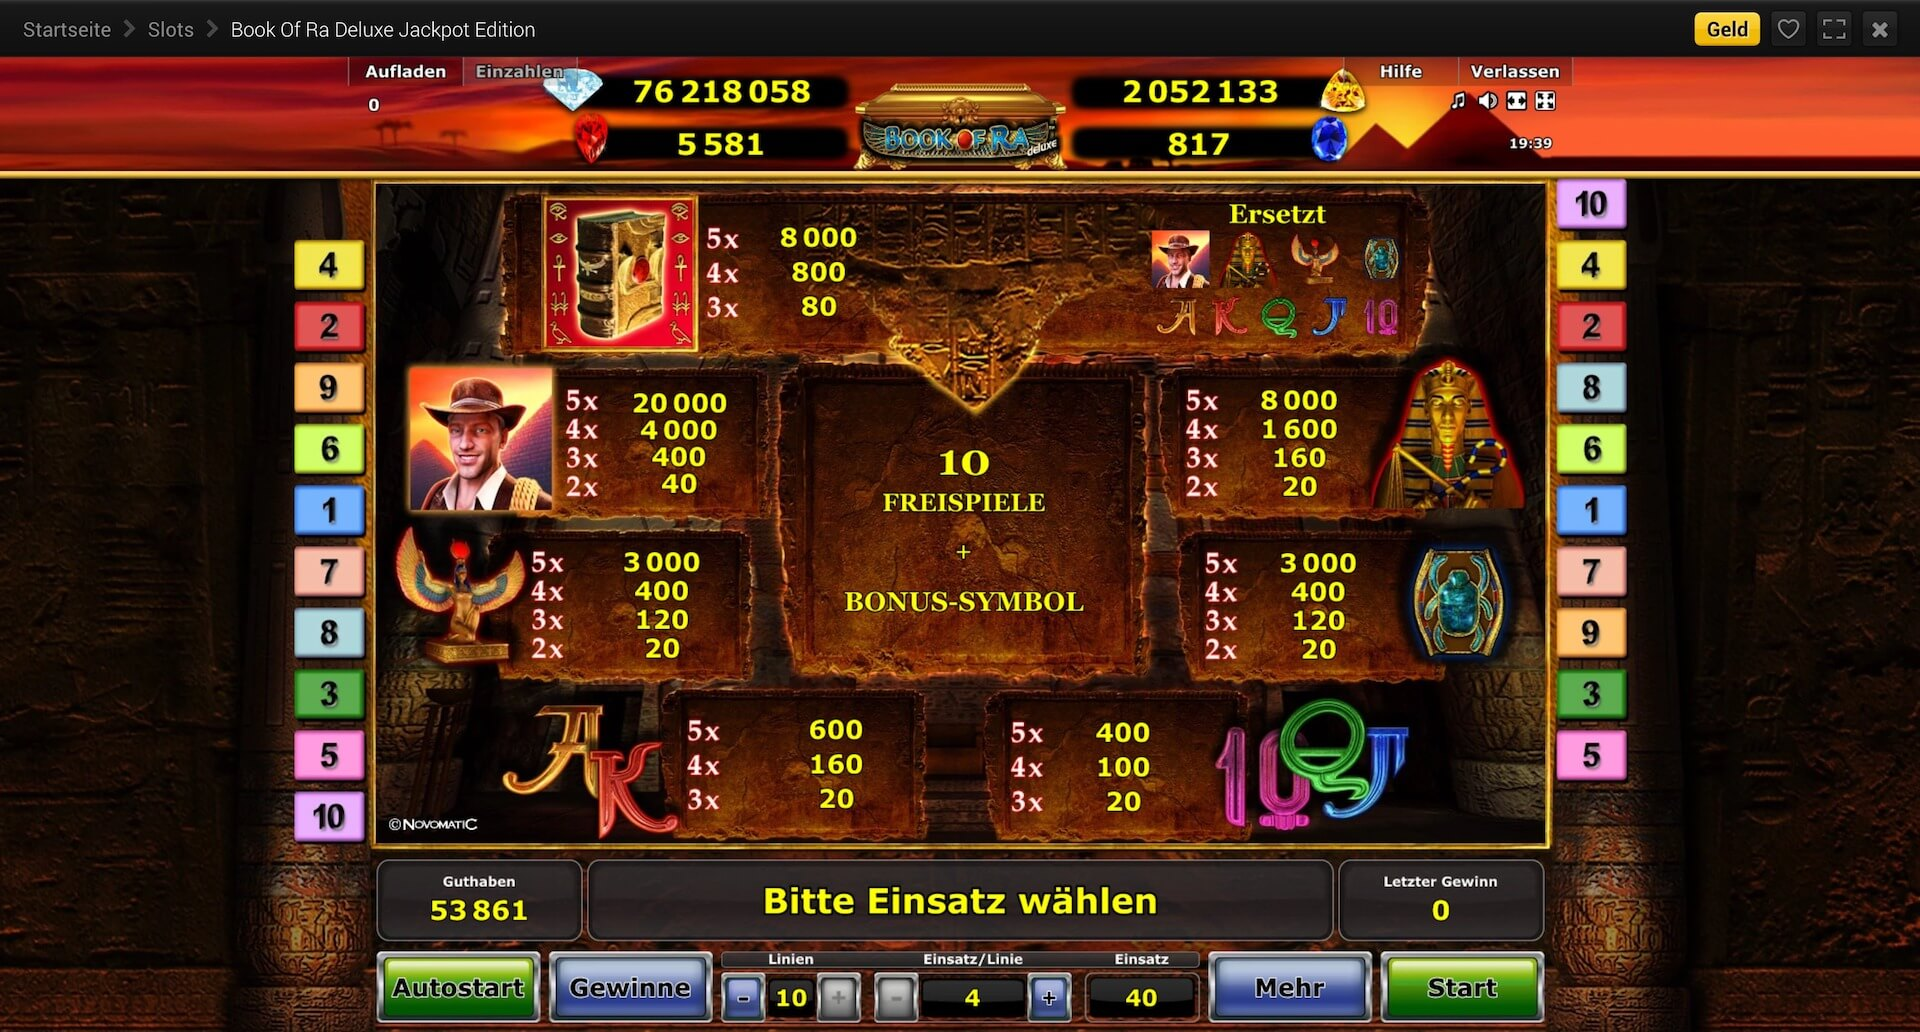 online casino jackpot www.book-of-ra.de